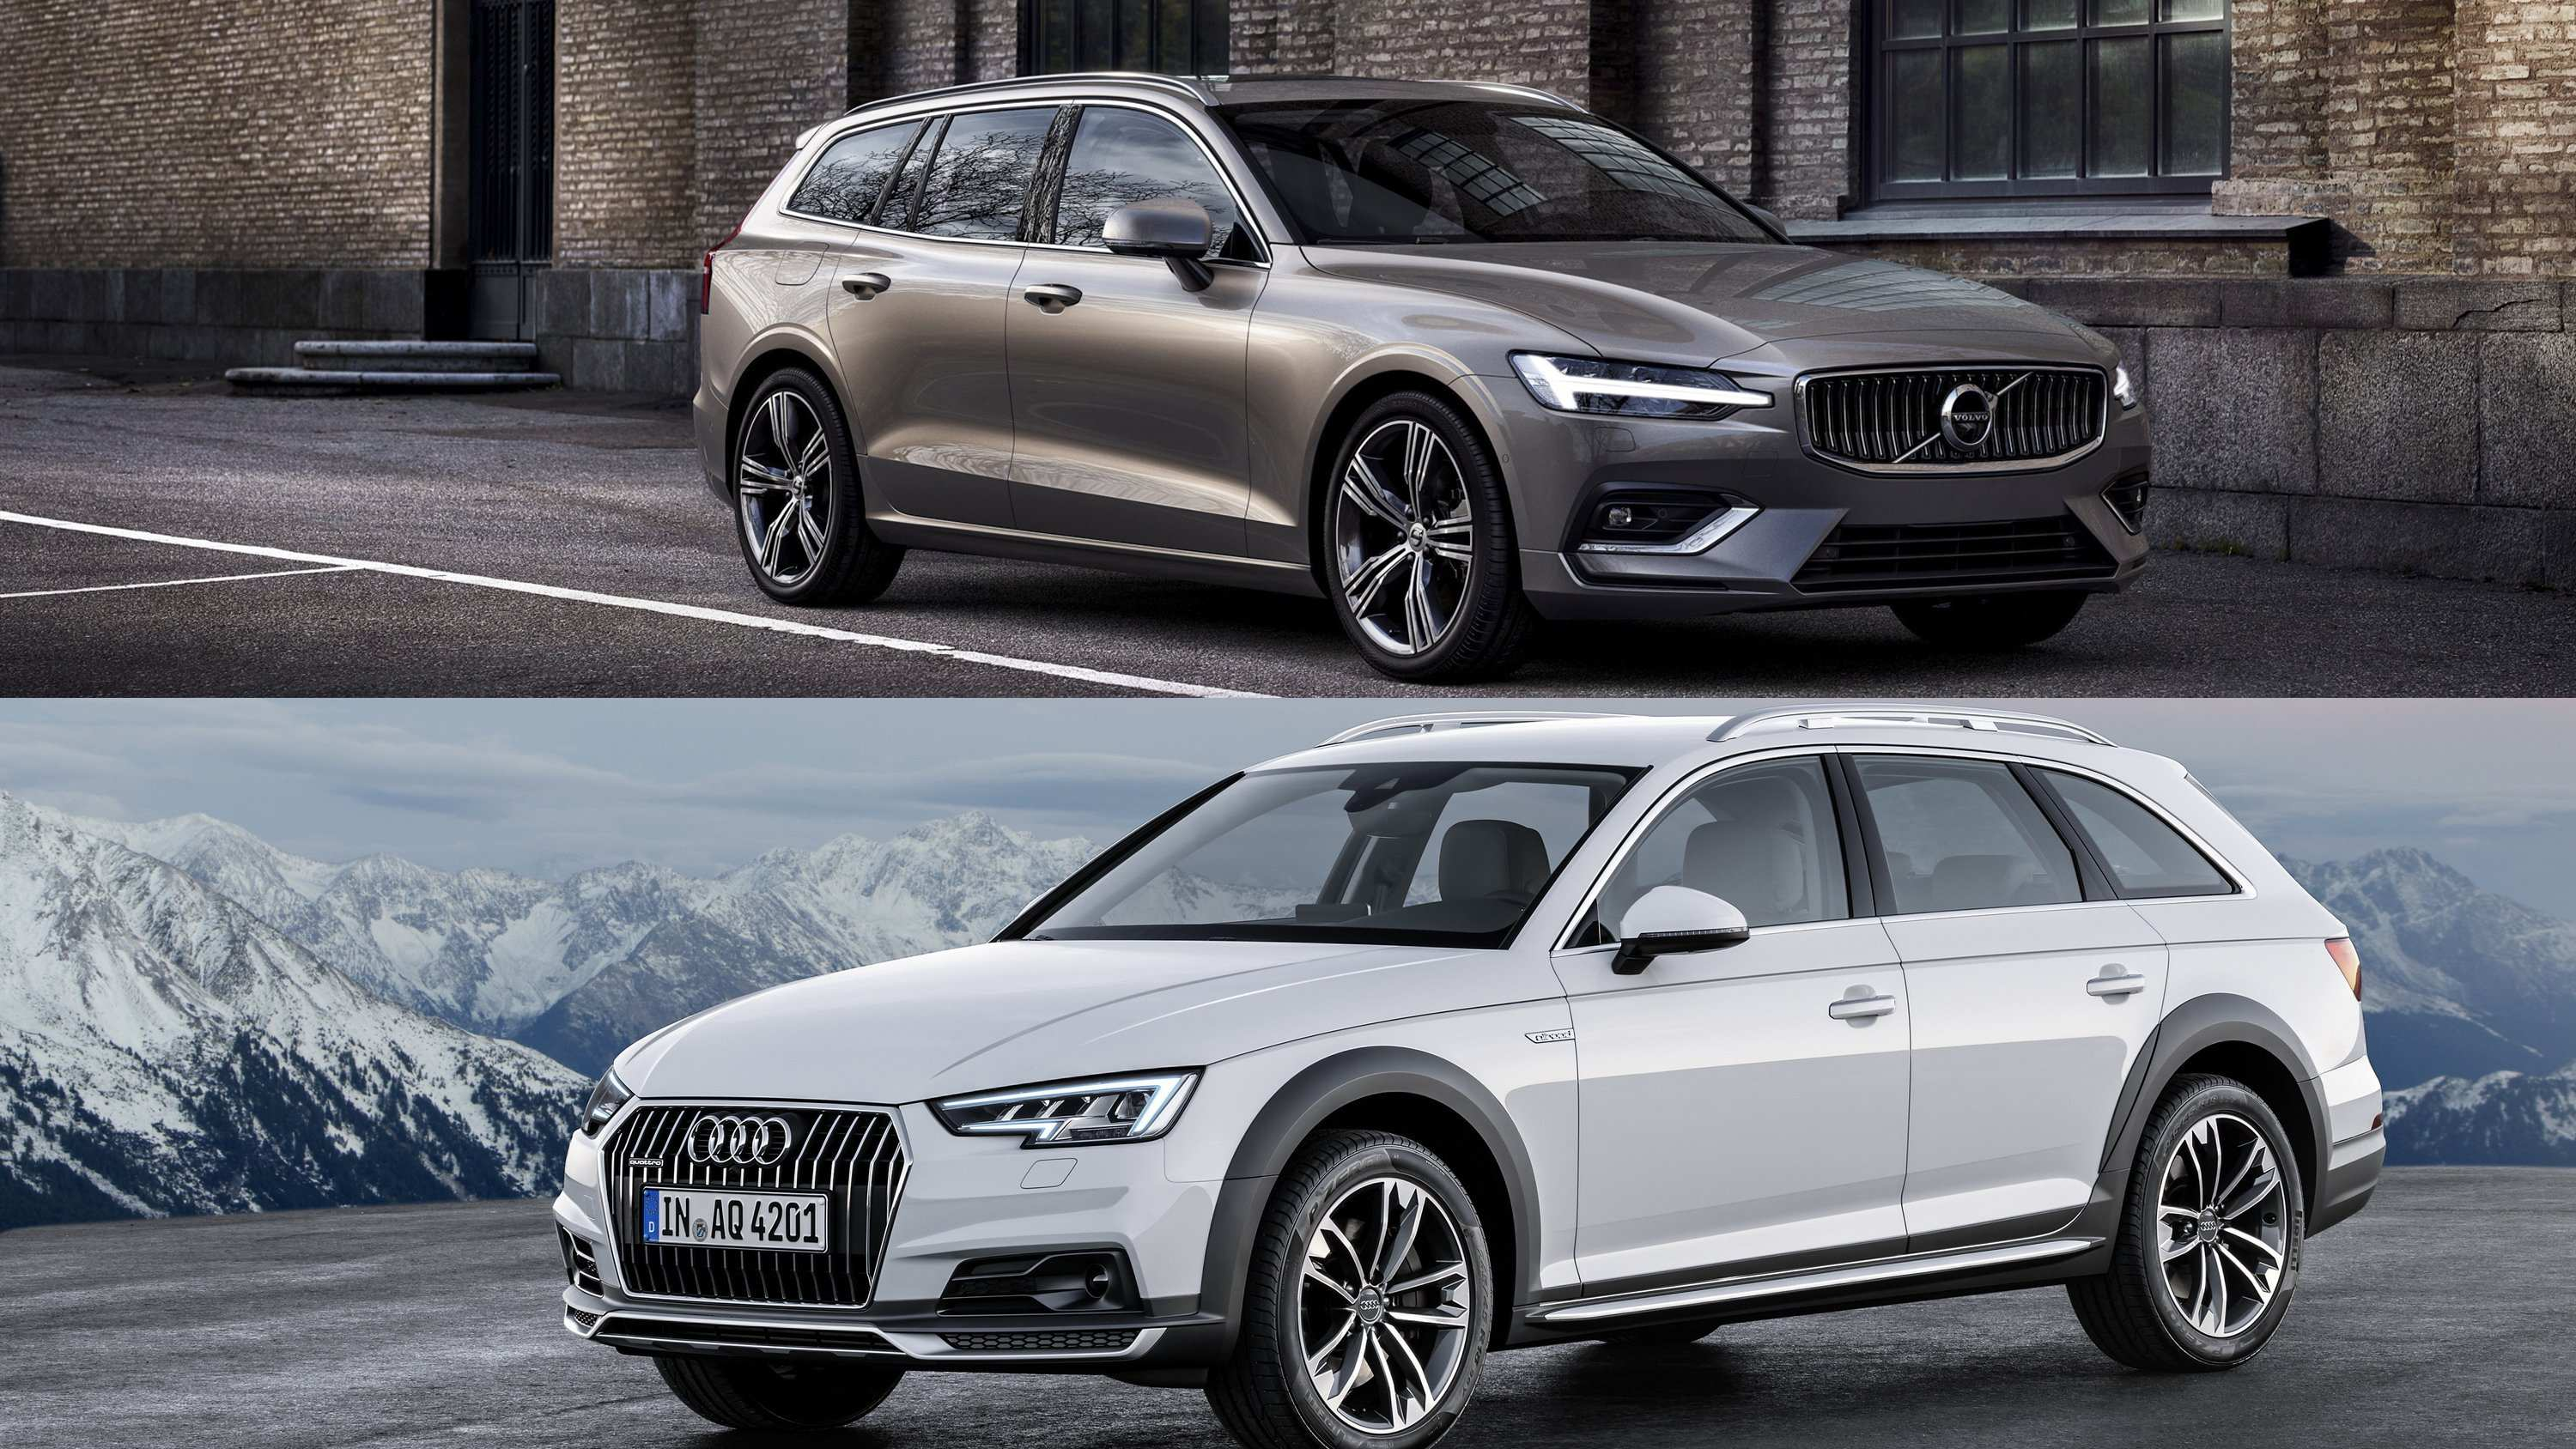 65 Best Review New Volvo V60 2019 Ground Clearance New Engine Exterior by New Volvo V60 2019 Ground Clearance New Engine